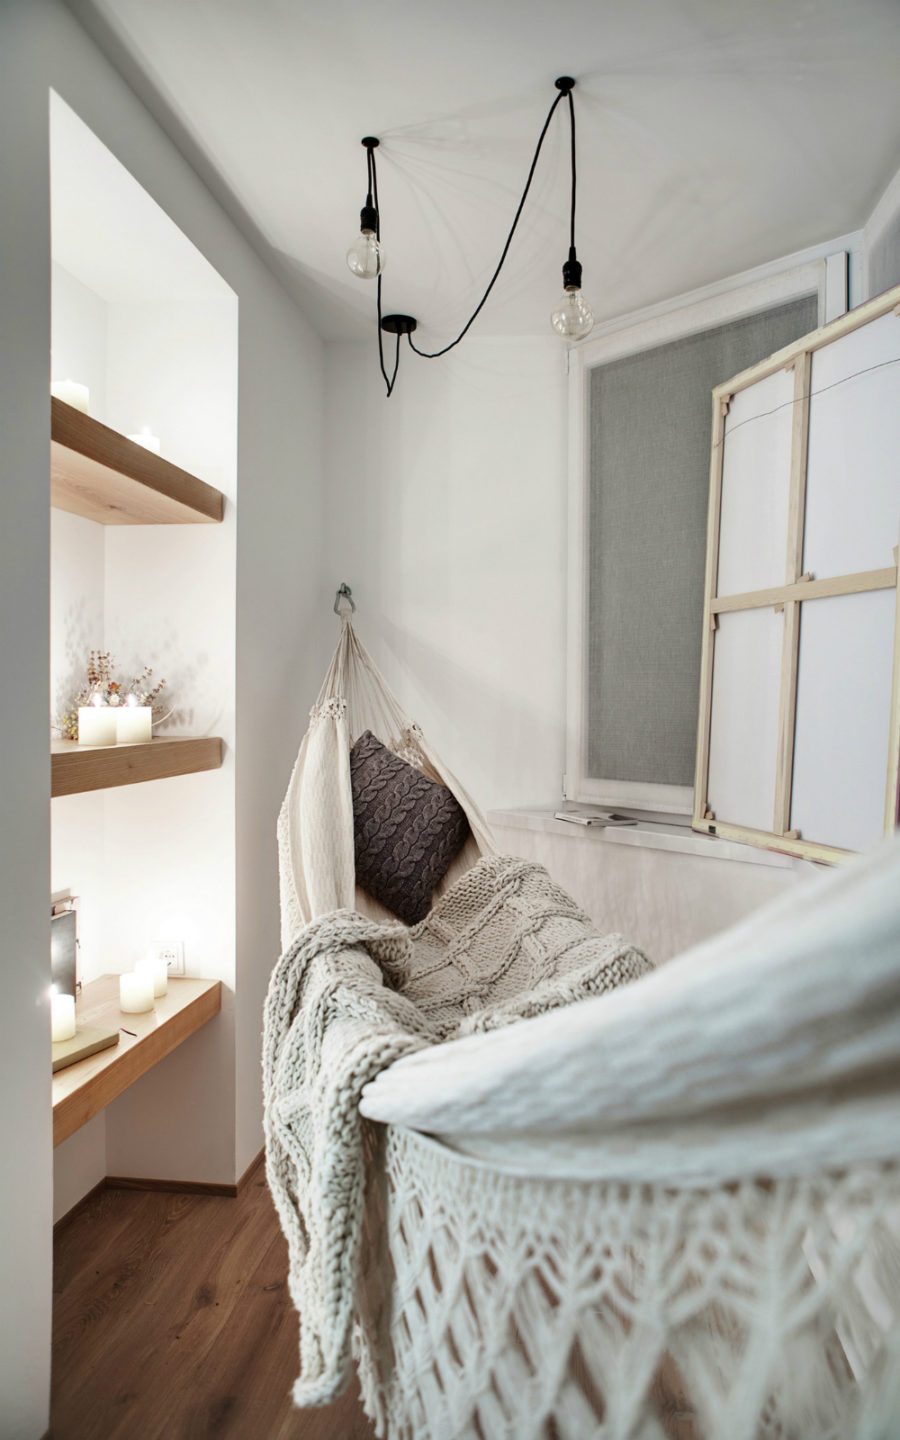 View In Gallery Tiny Room With A Hammock